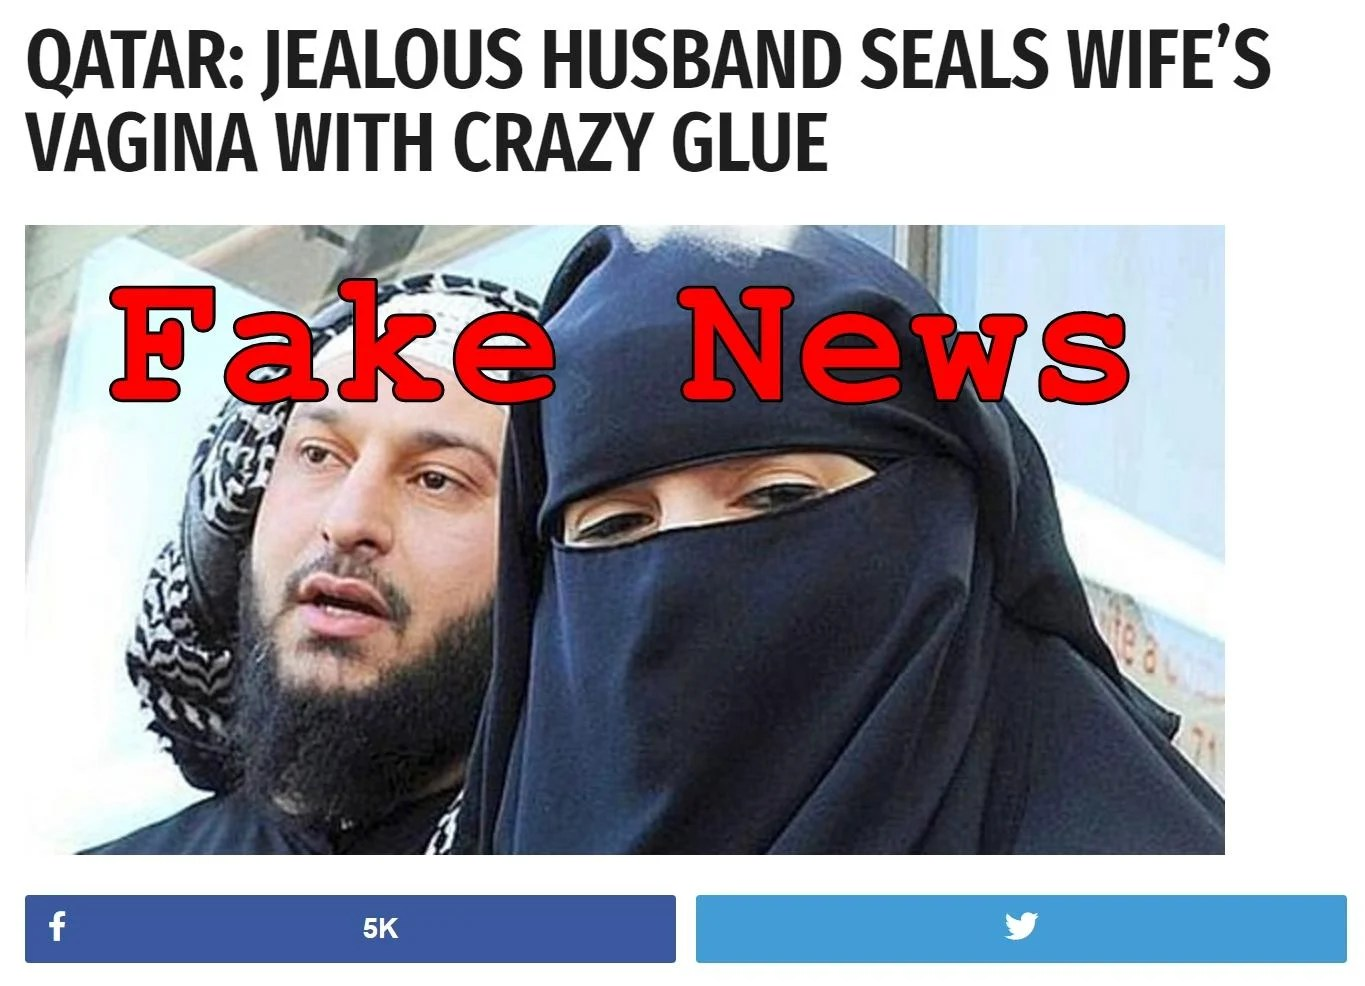 Crazy Glue Fake News Jealous Husband In Qatar Did Not Seal Wife S Vagina